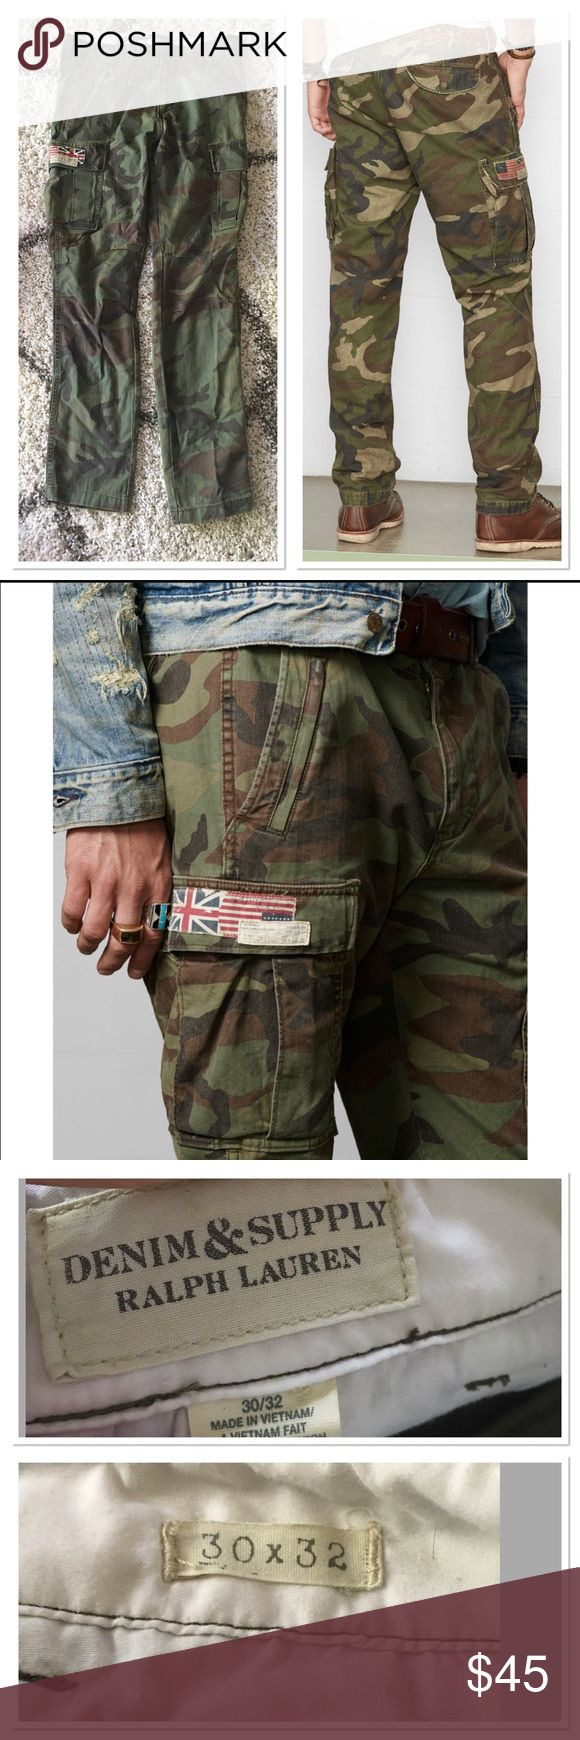 Ralph Lauren denim and supply camo pants 30x32 Basically new camouflage pants by Ralph Lauren men's  size is 30 x 32 cargo style Ralph Lauren Pants Cargo